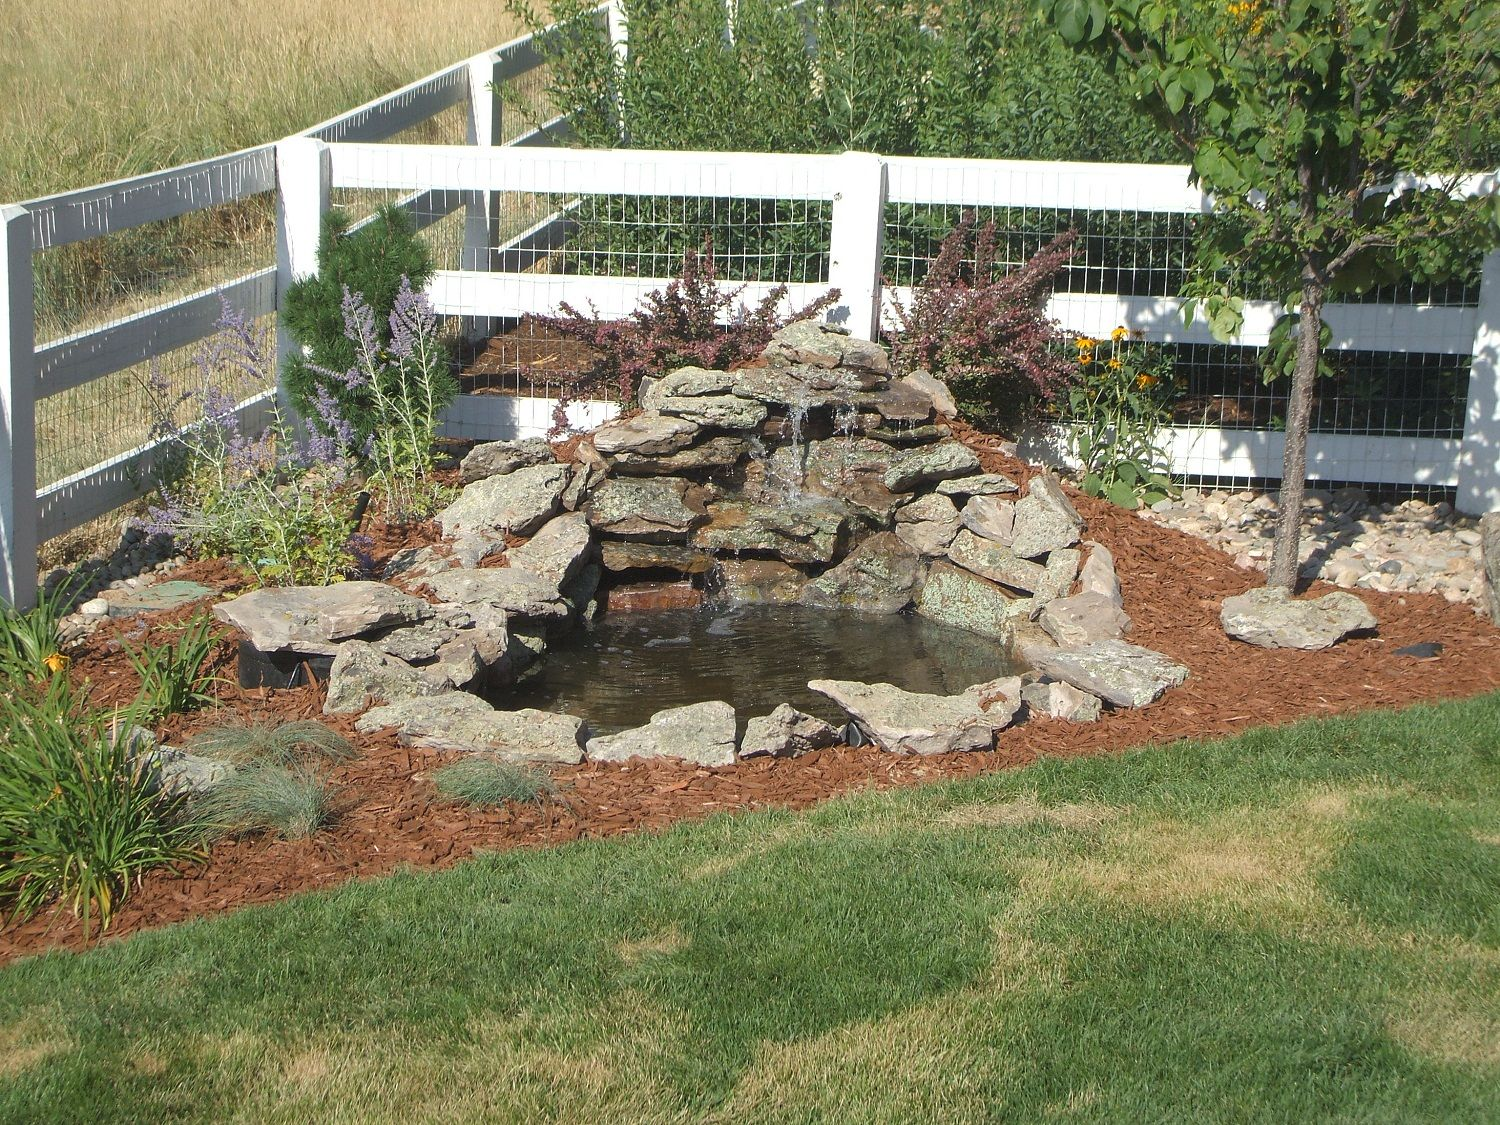 Garden and patio small diy ponds with waterfall and stone for Small pond landscaping ideas